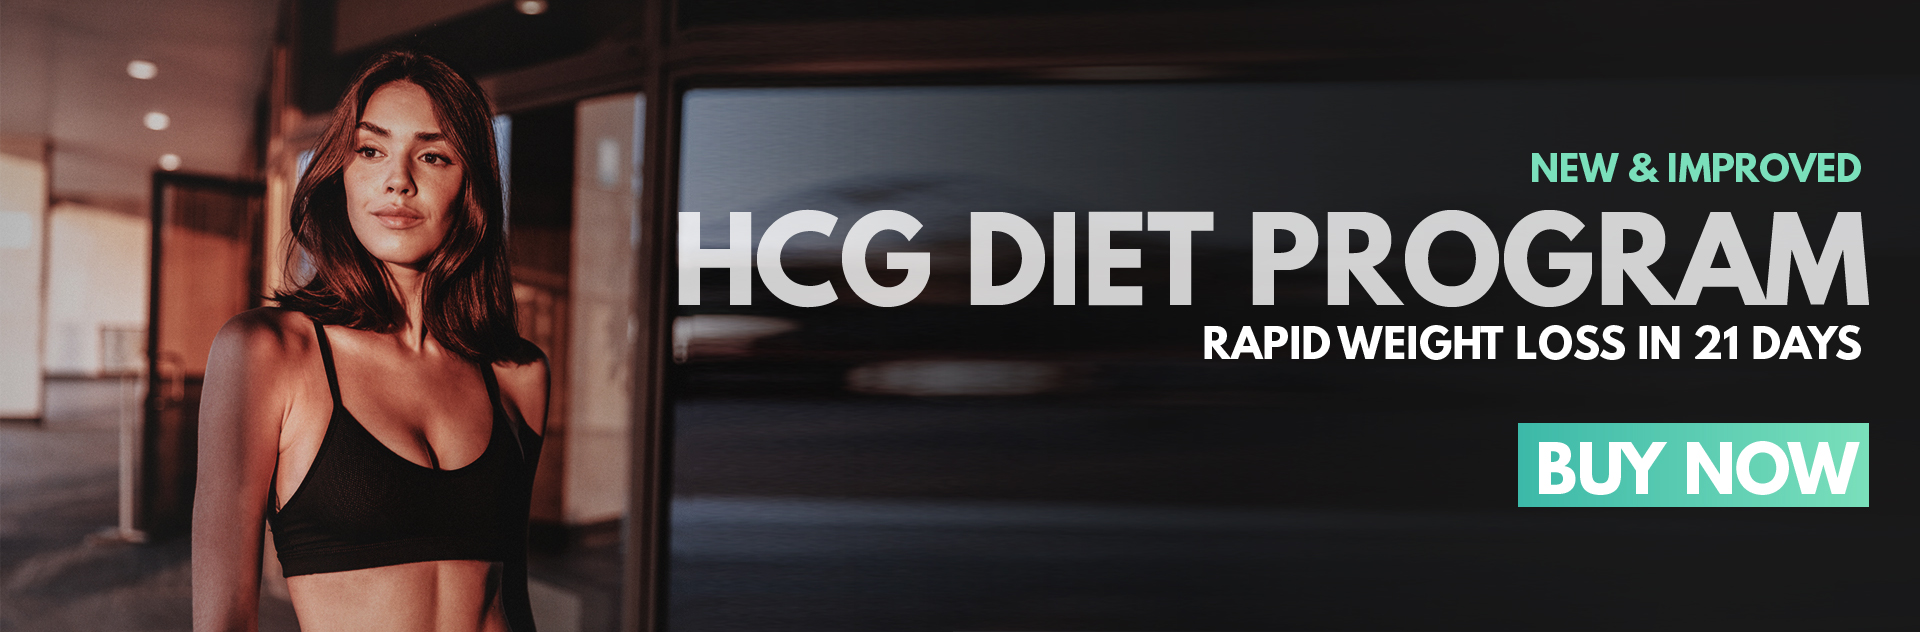 HCG diet program, banner, rapid weight loss program, obesity diet, weight loss medication, ageing solutions, buy peptides online australia-04